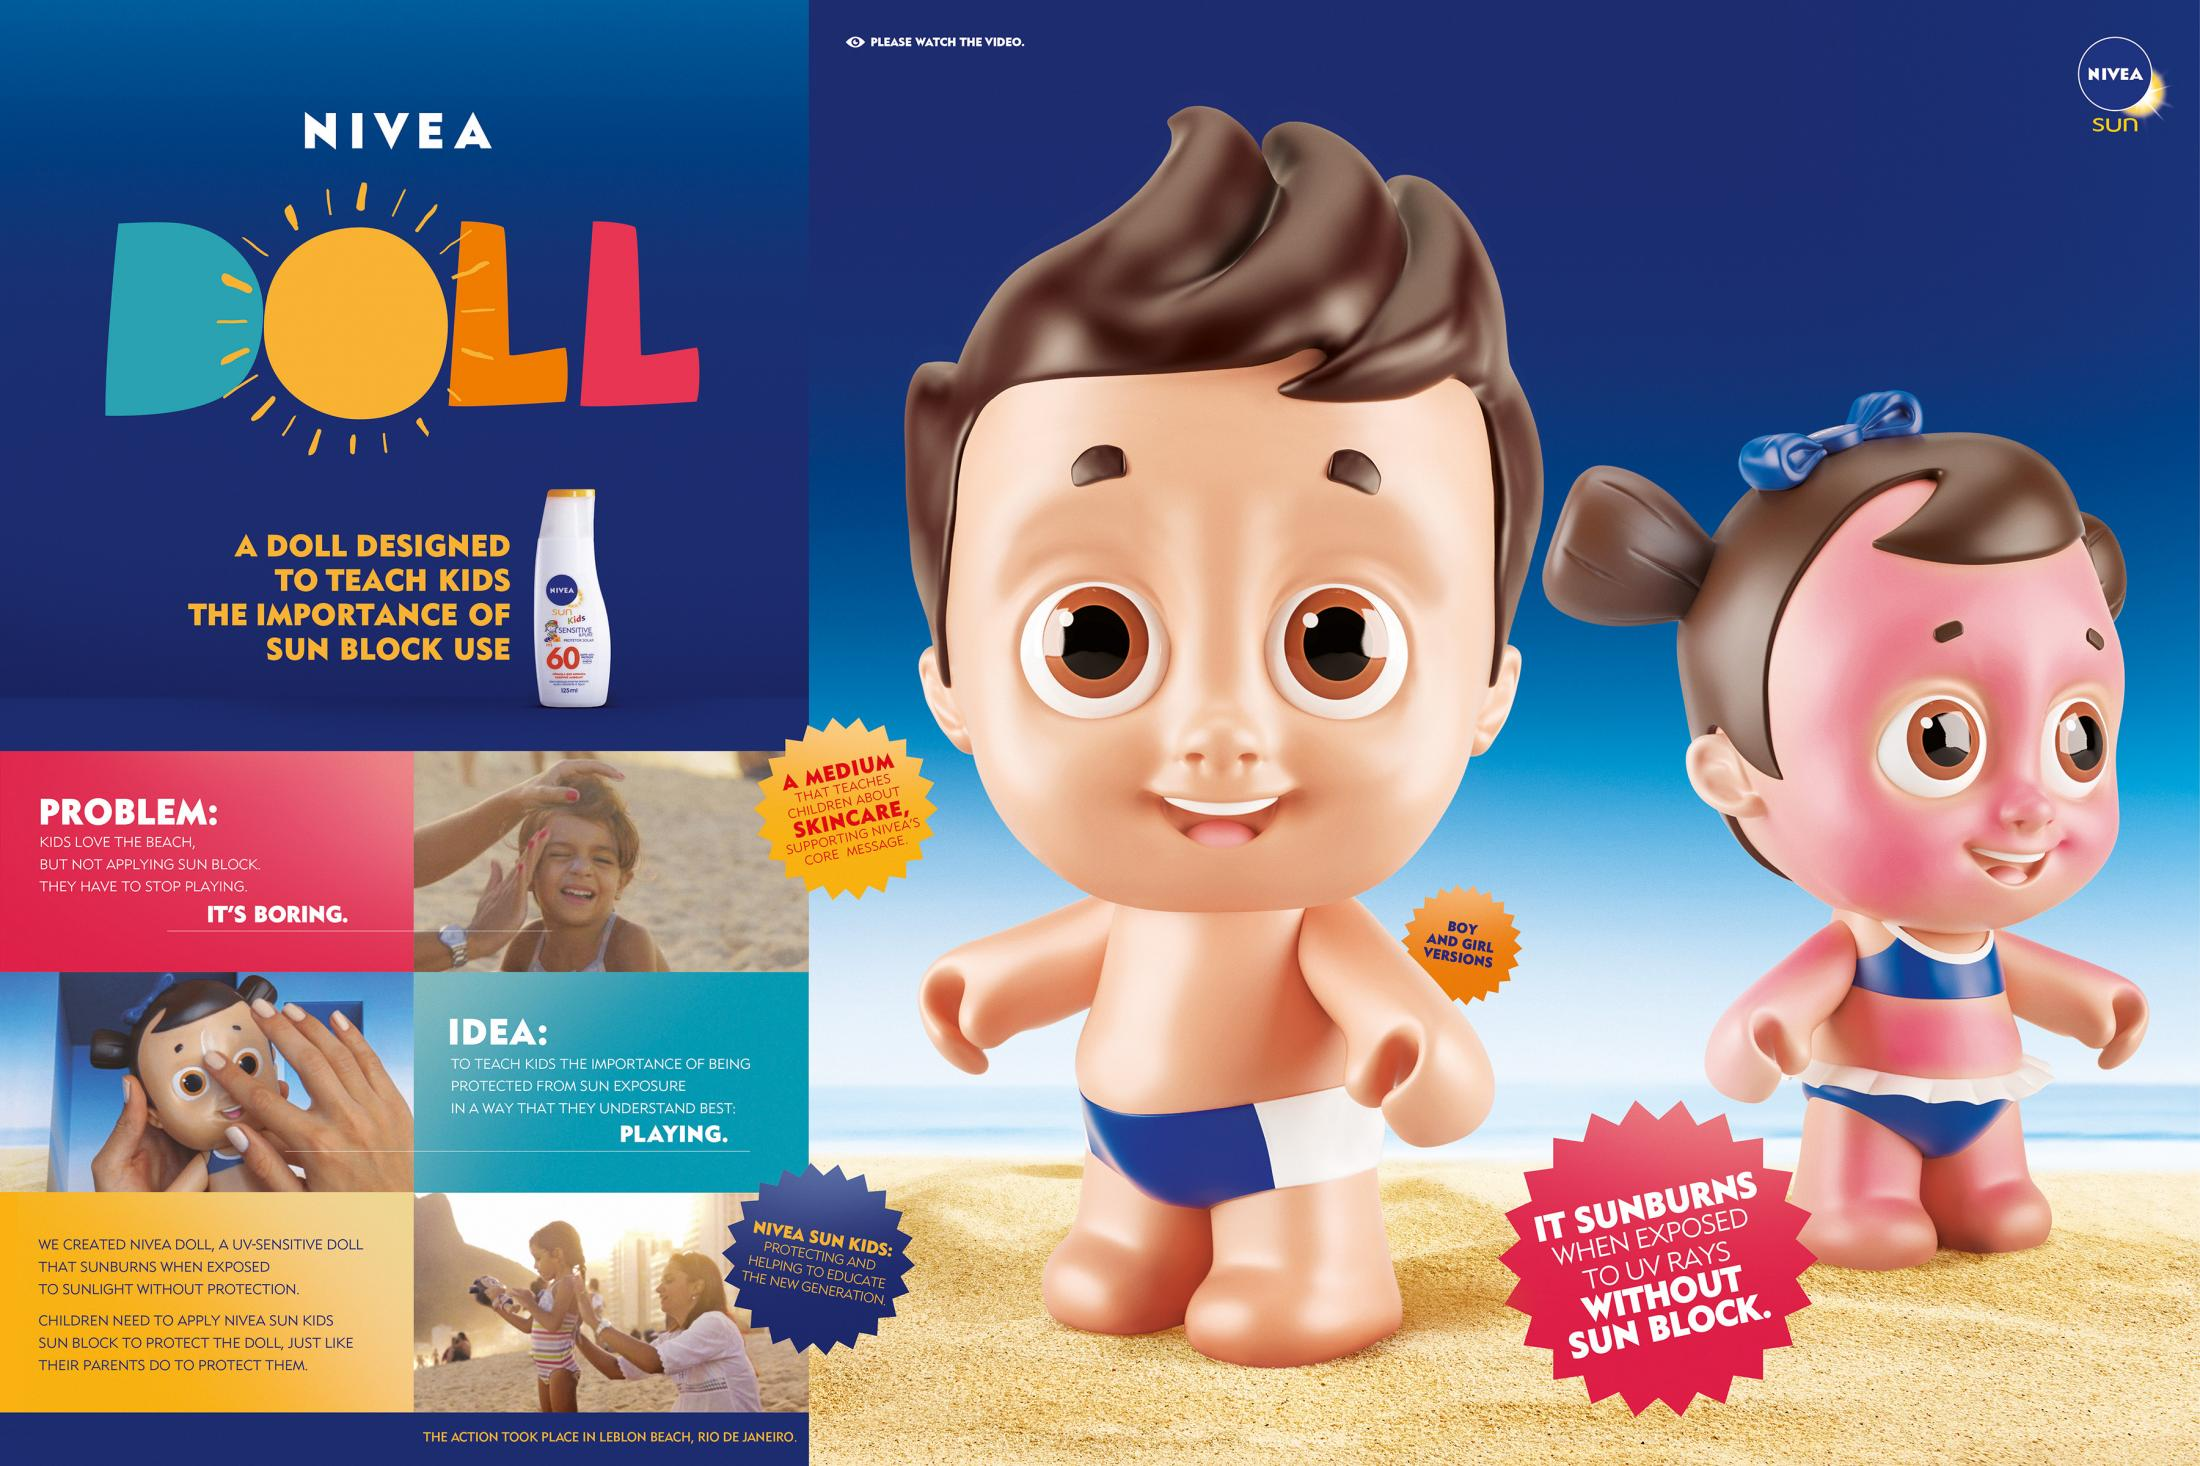 Thumbnail for NIVEA Doll